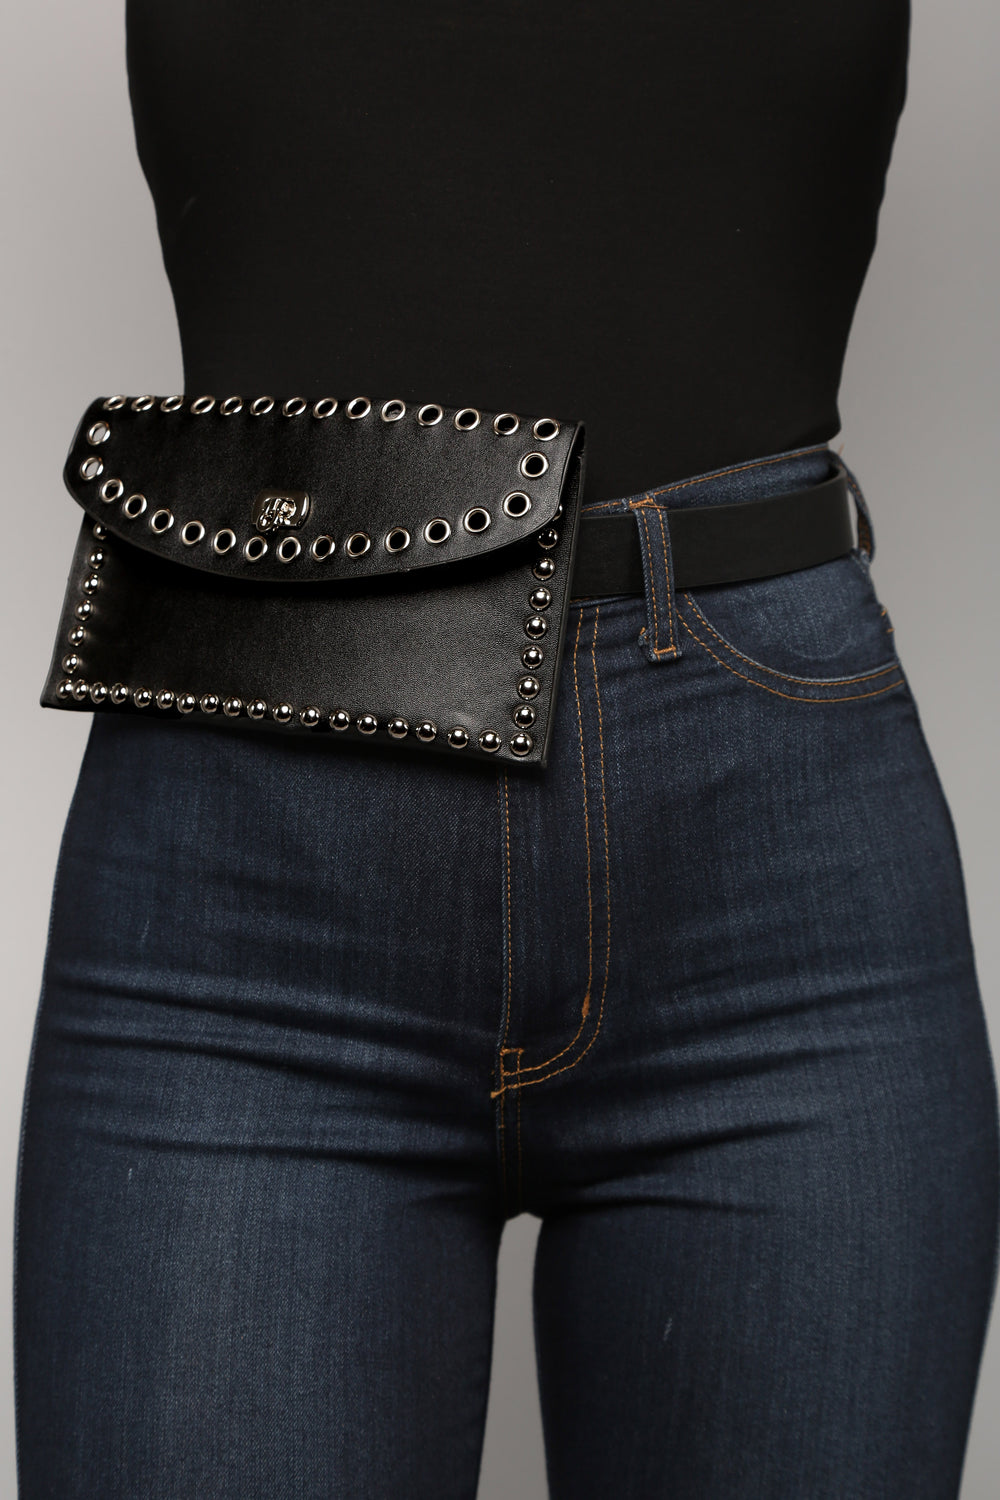 Bring On The Heat Fanny Pack - Black